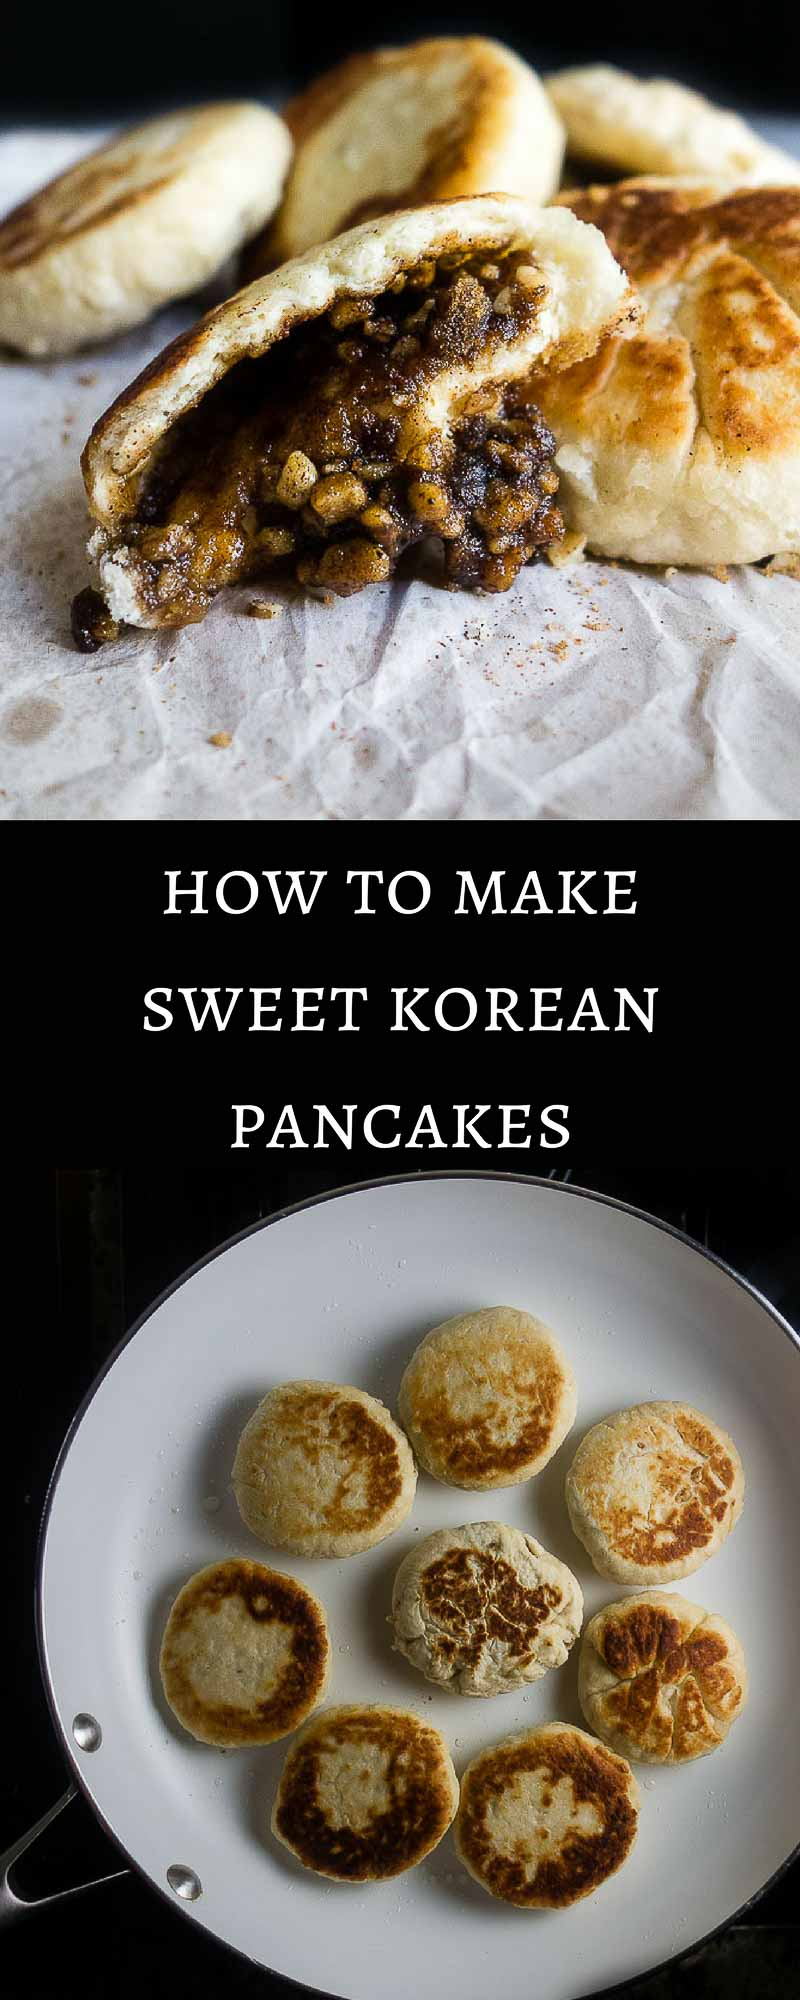 These Sweet Korean Pancakes (Hotteok) are a popular Korean street food made with a super simple yeast dough and traditionally filled with an amazing melt in your mouth mixture of brown sugar, cinnamon and walnuts.korean sweet pancakes | how to make korean pancakes | korean street food | hotteok | filled sweet korena pancakes | easy korean dessert | sweet pancakes | korean sweet dessert pancakes | classic korean dishes | traditional korean recipes